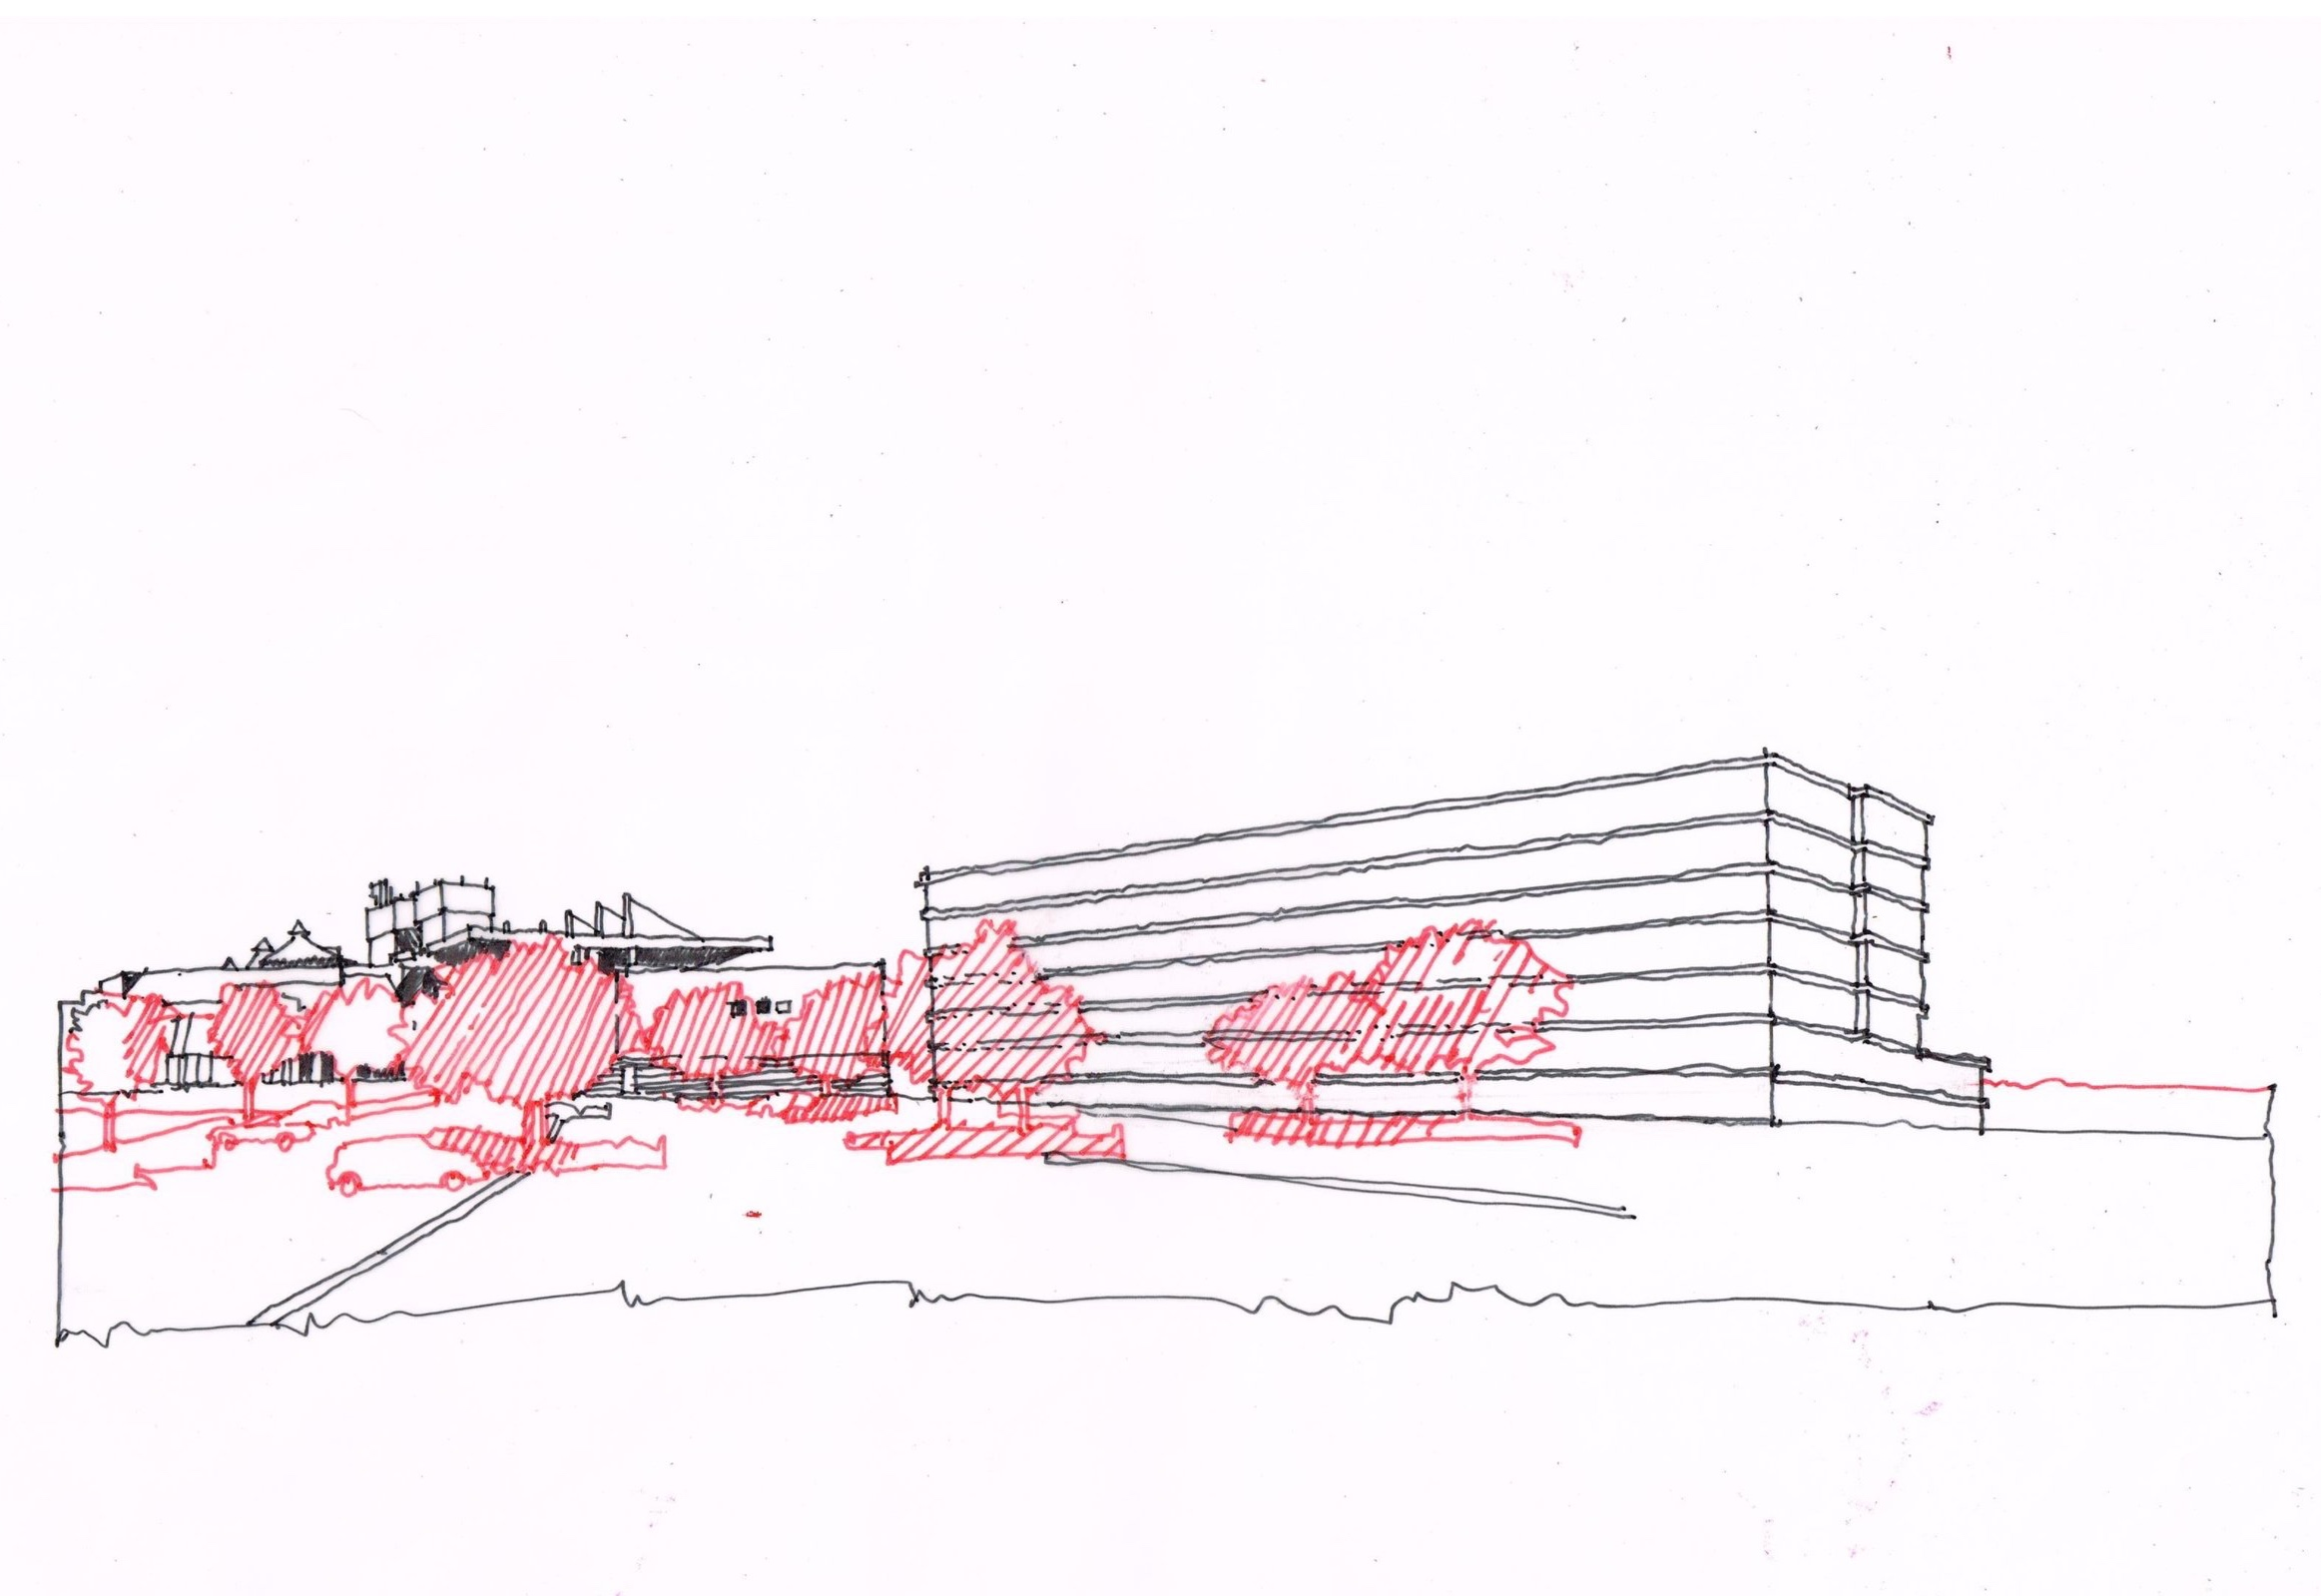 Architects impression of just how massive the proposed hotel would negatively impact the views across our Greenbelt.